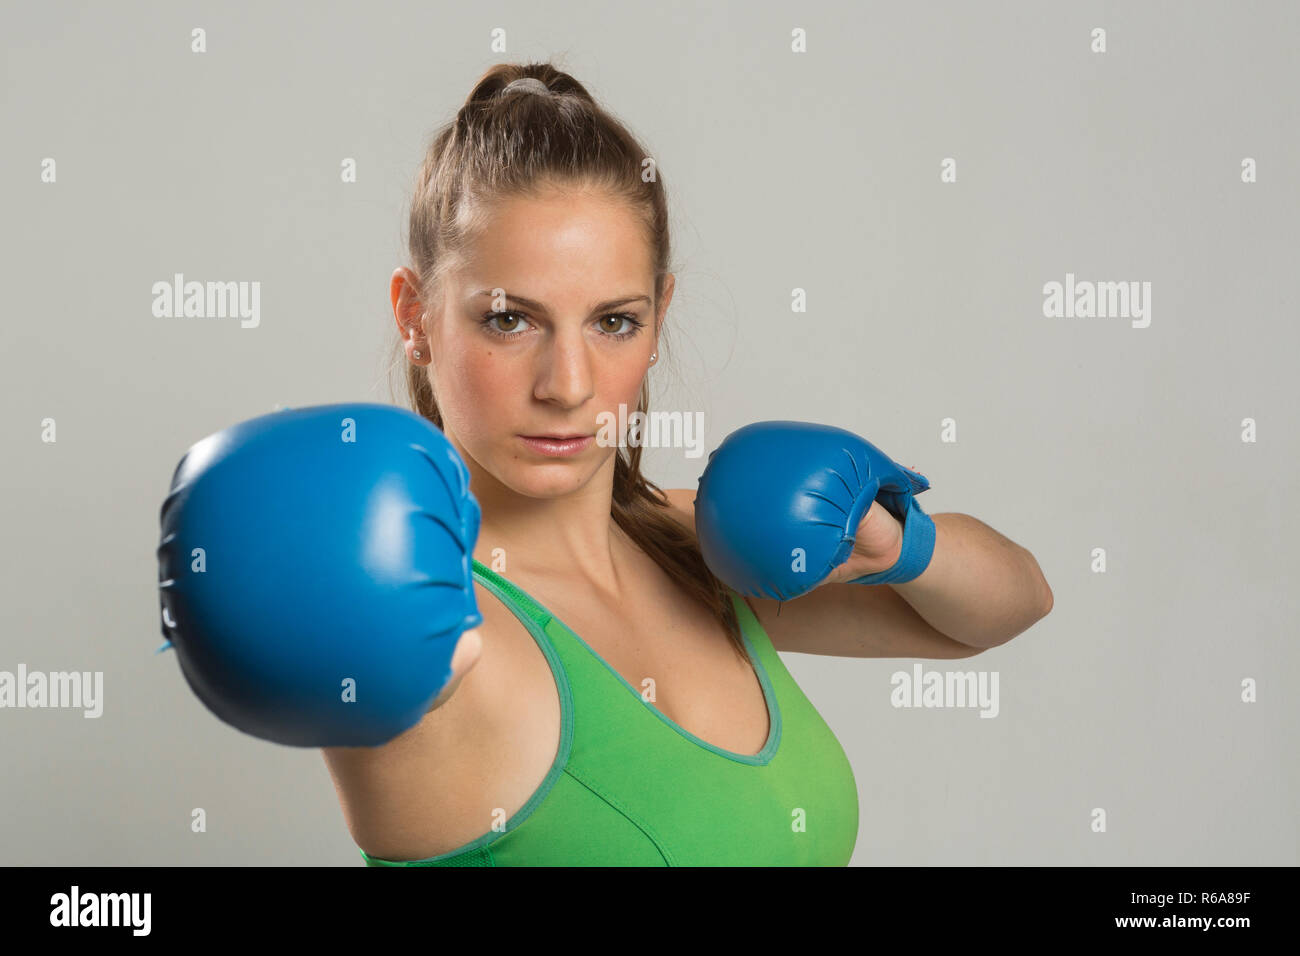 Young Woman With Boxing Gloves Showing Ready To Fight - Stock Image